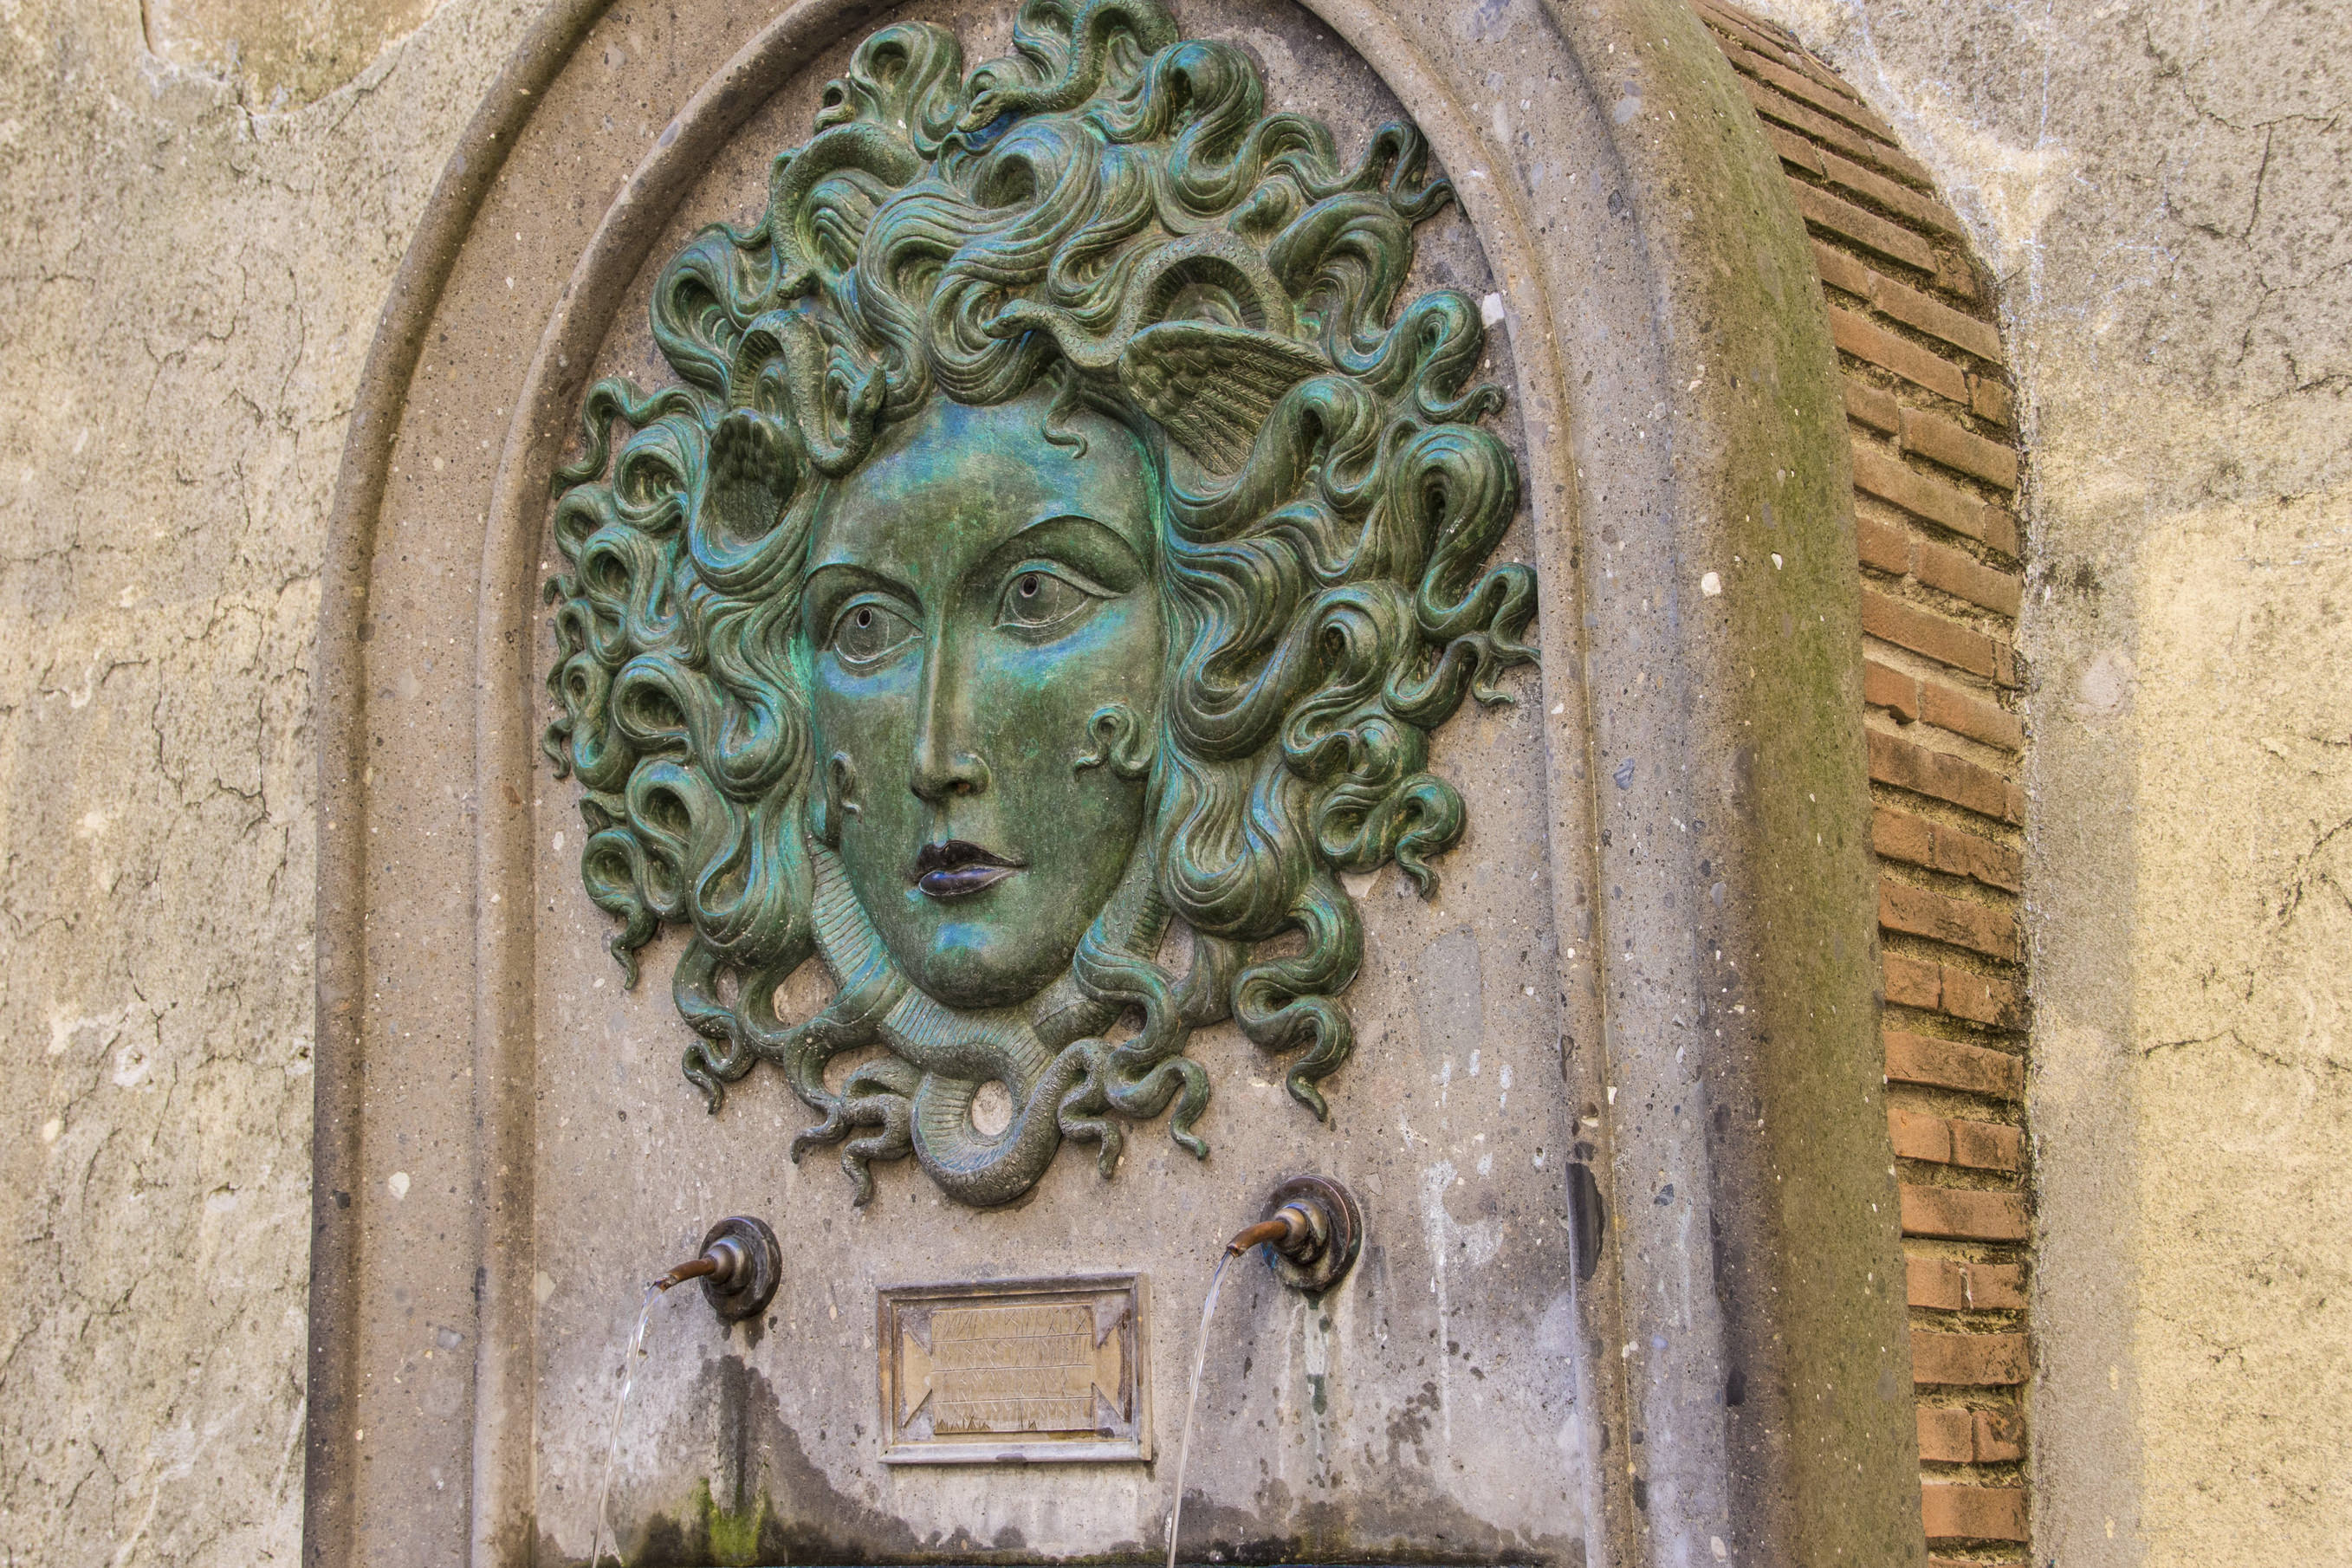 Fountain of Medusa in Nemi 2